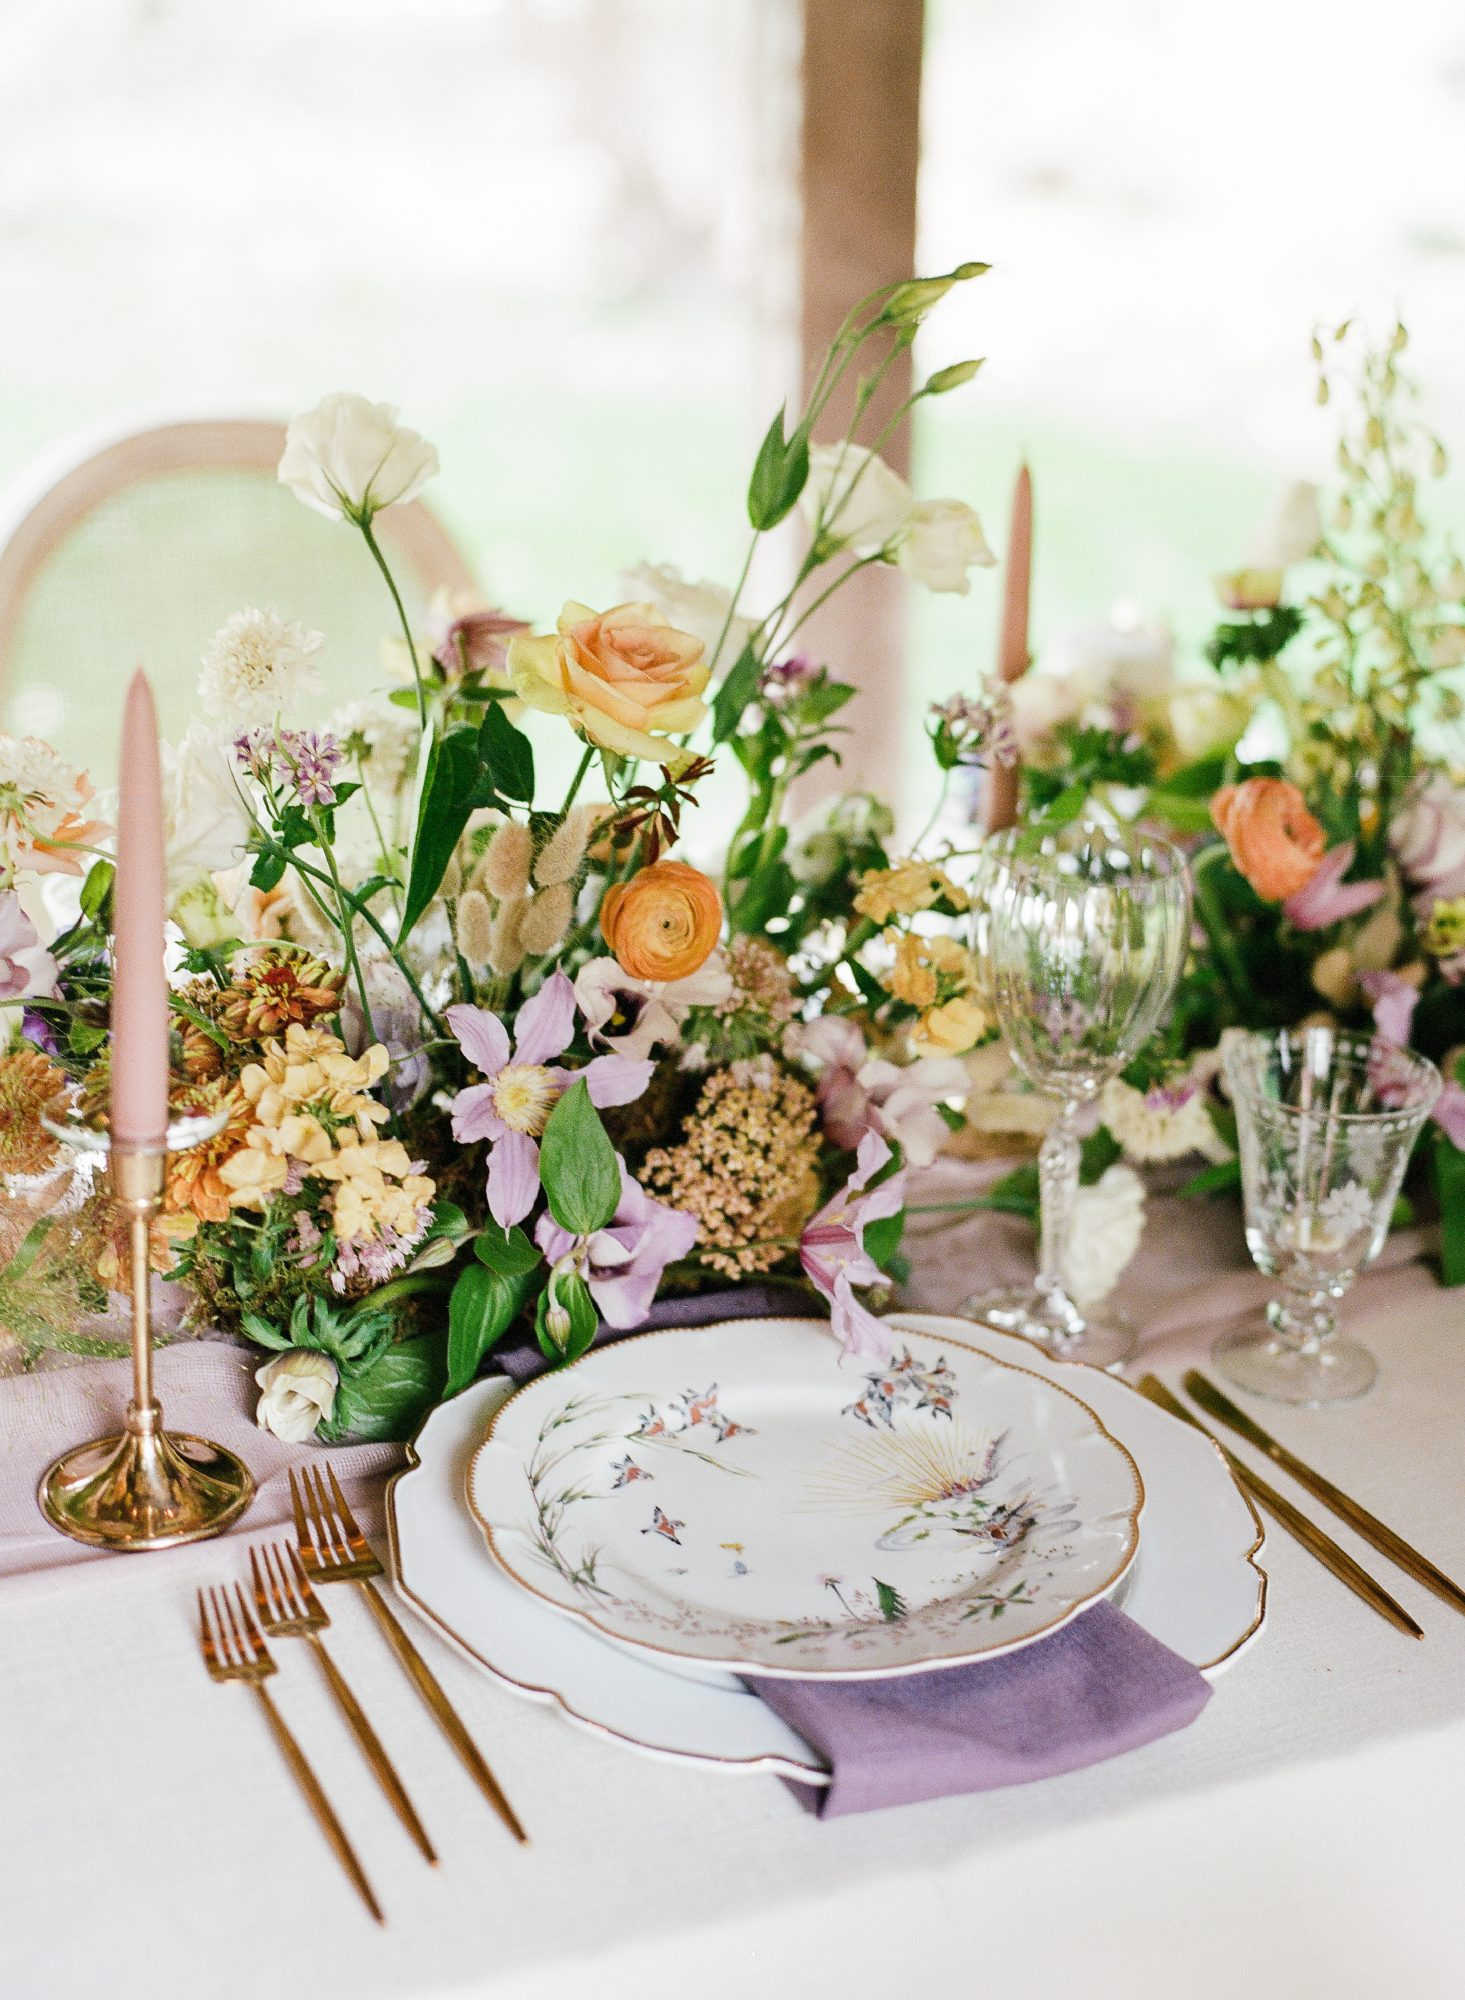 whimsical wedding place settings